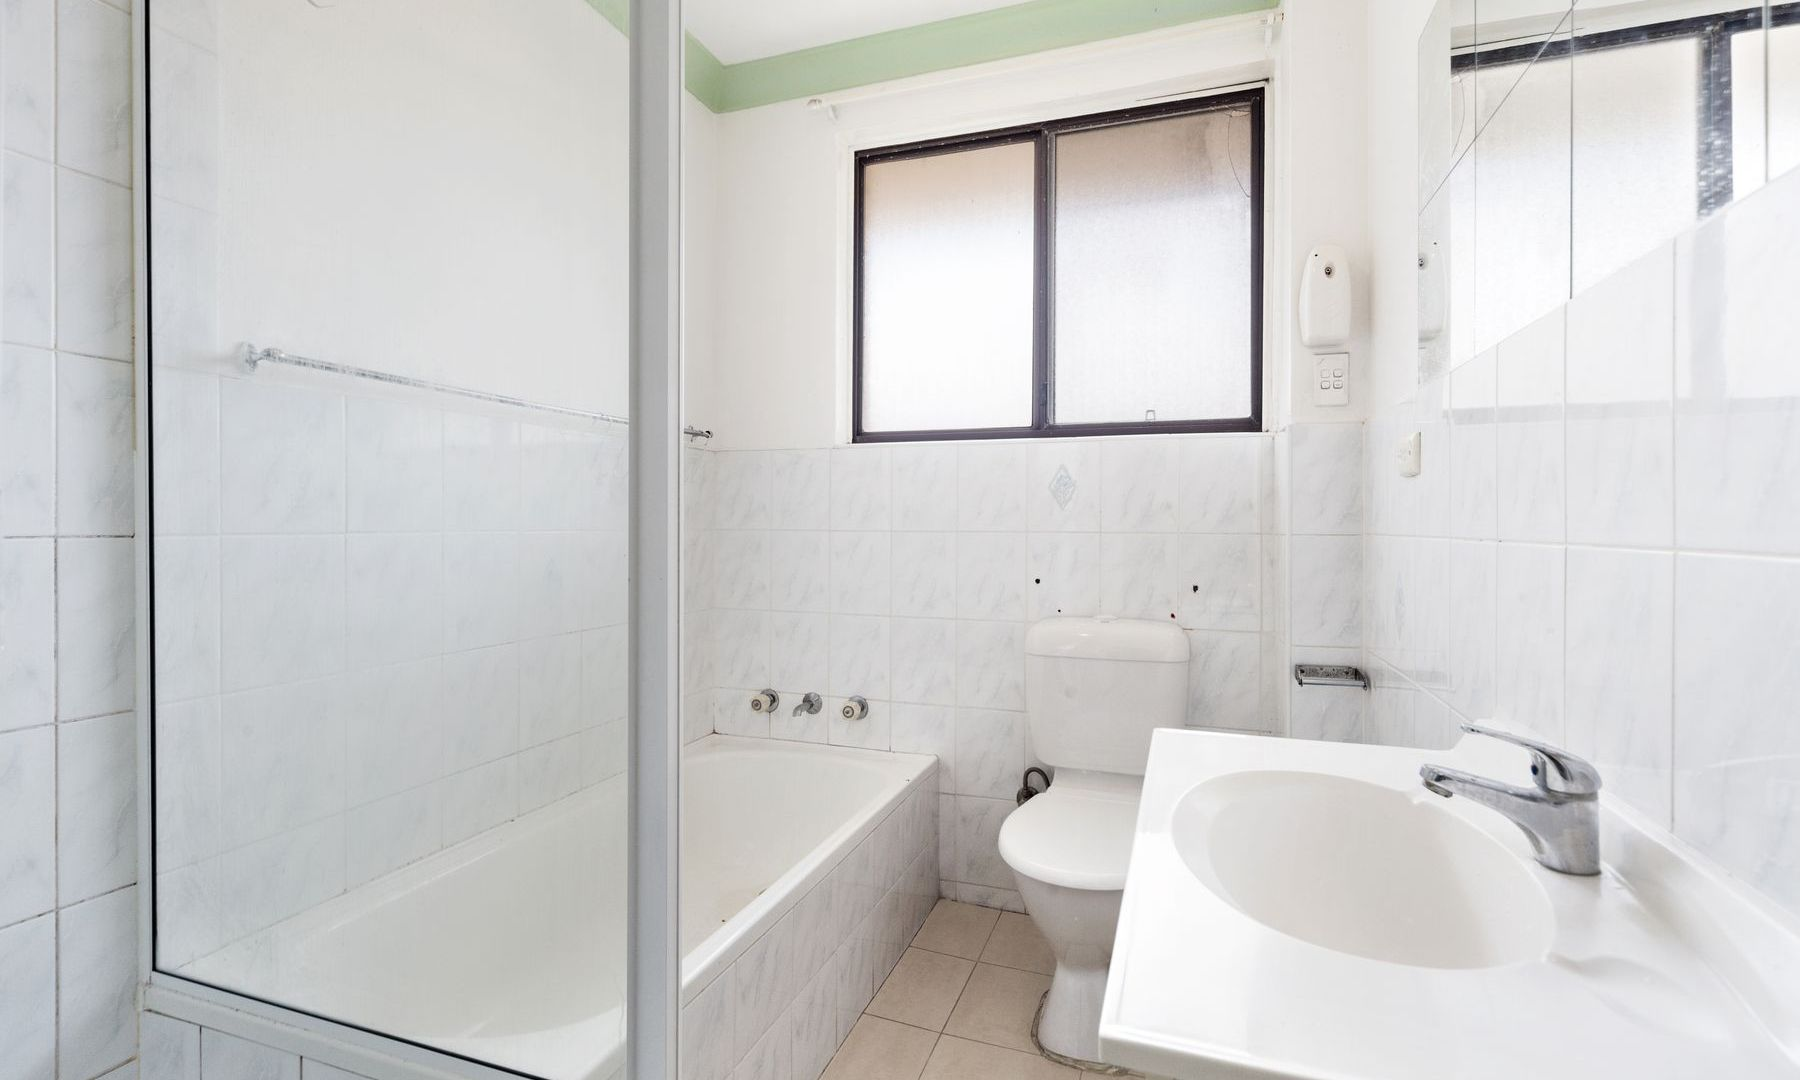 22/59-63 Bartley Street, Canley Vale NSW 2166, Image 1